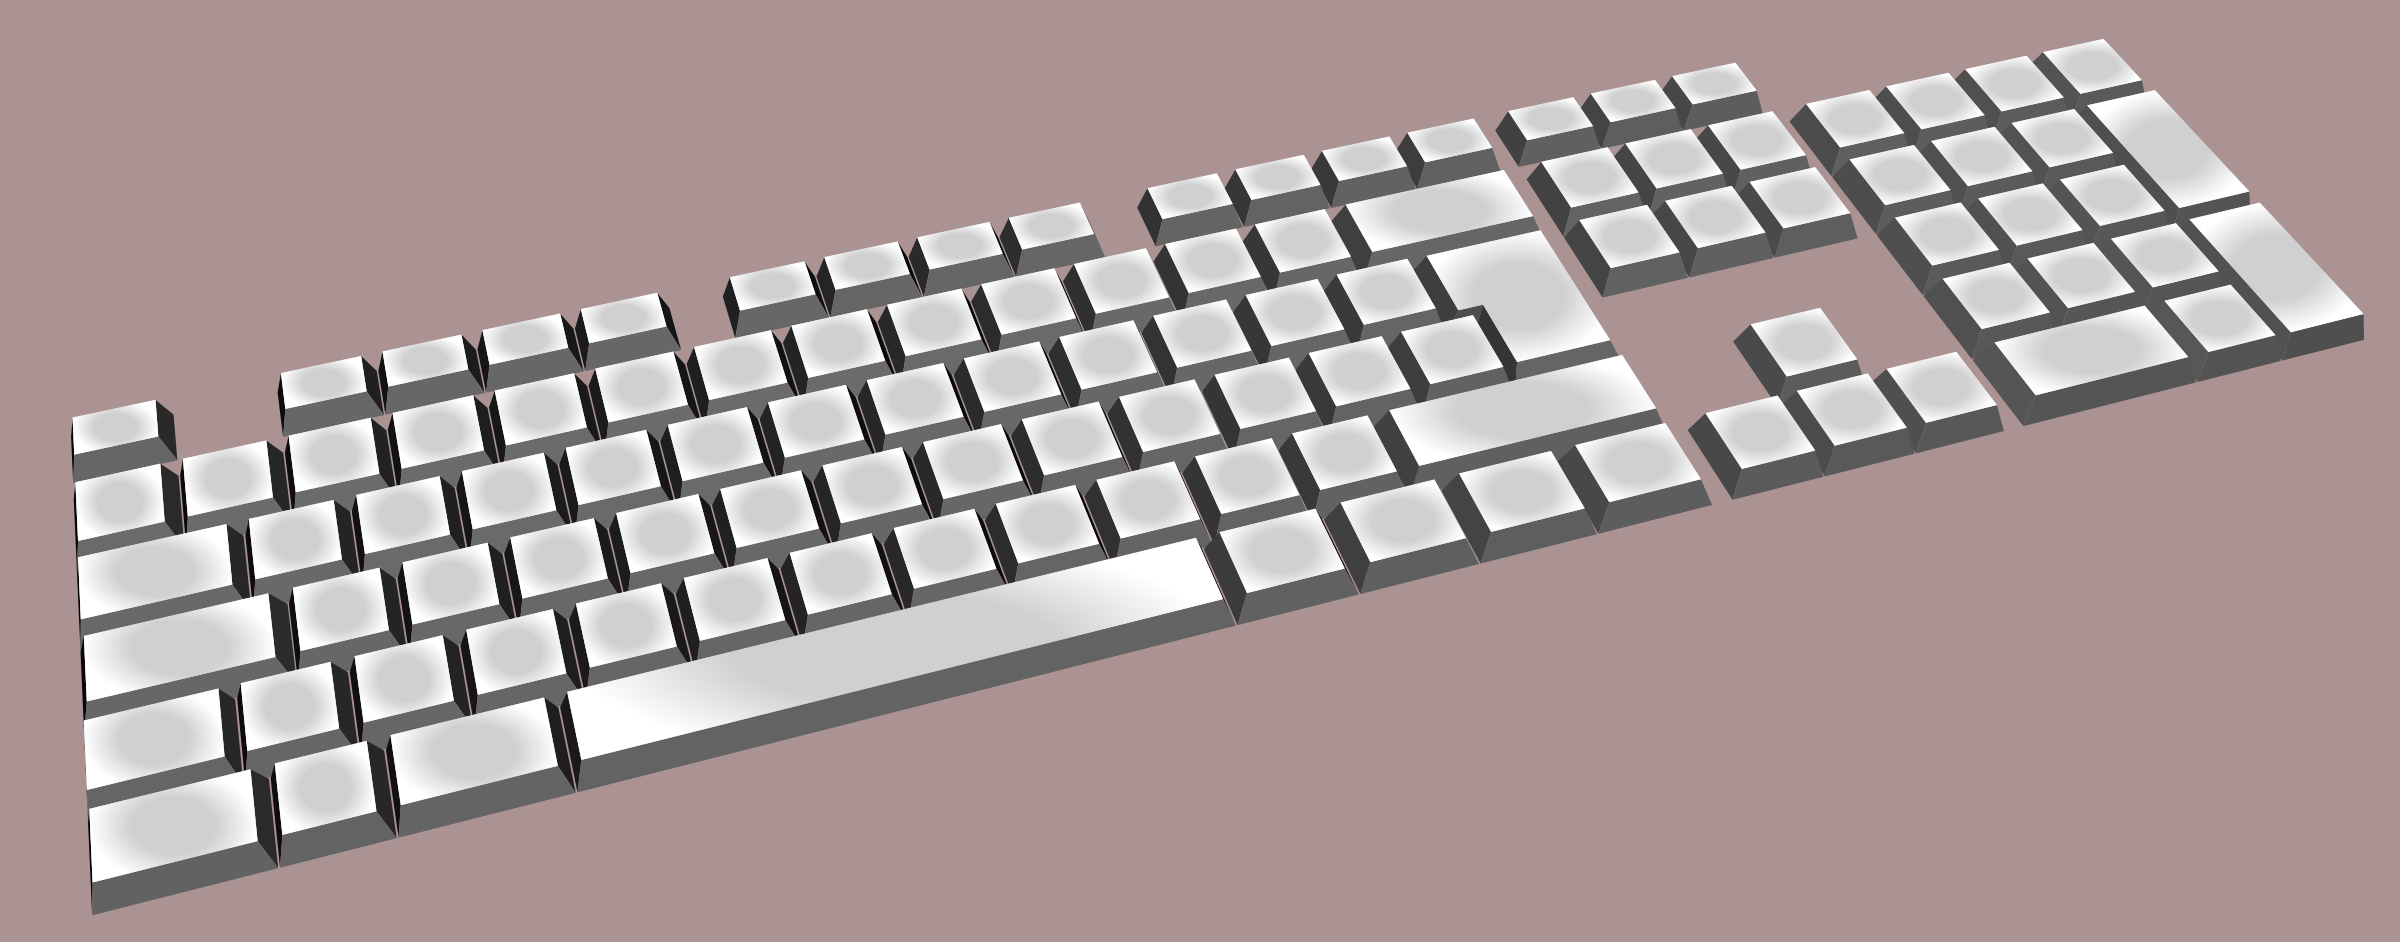 keyboard simple by Keistutis